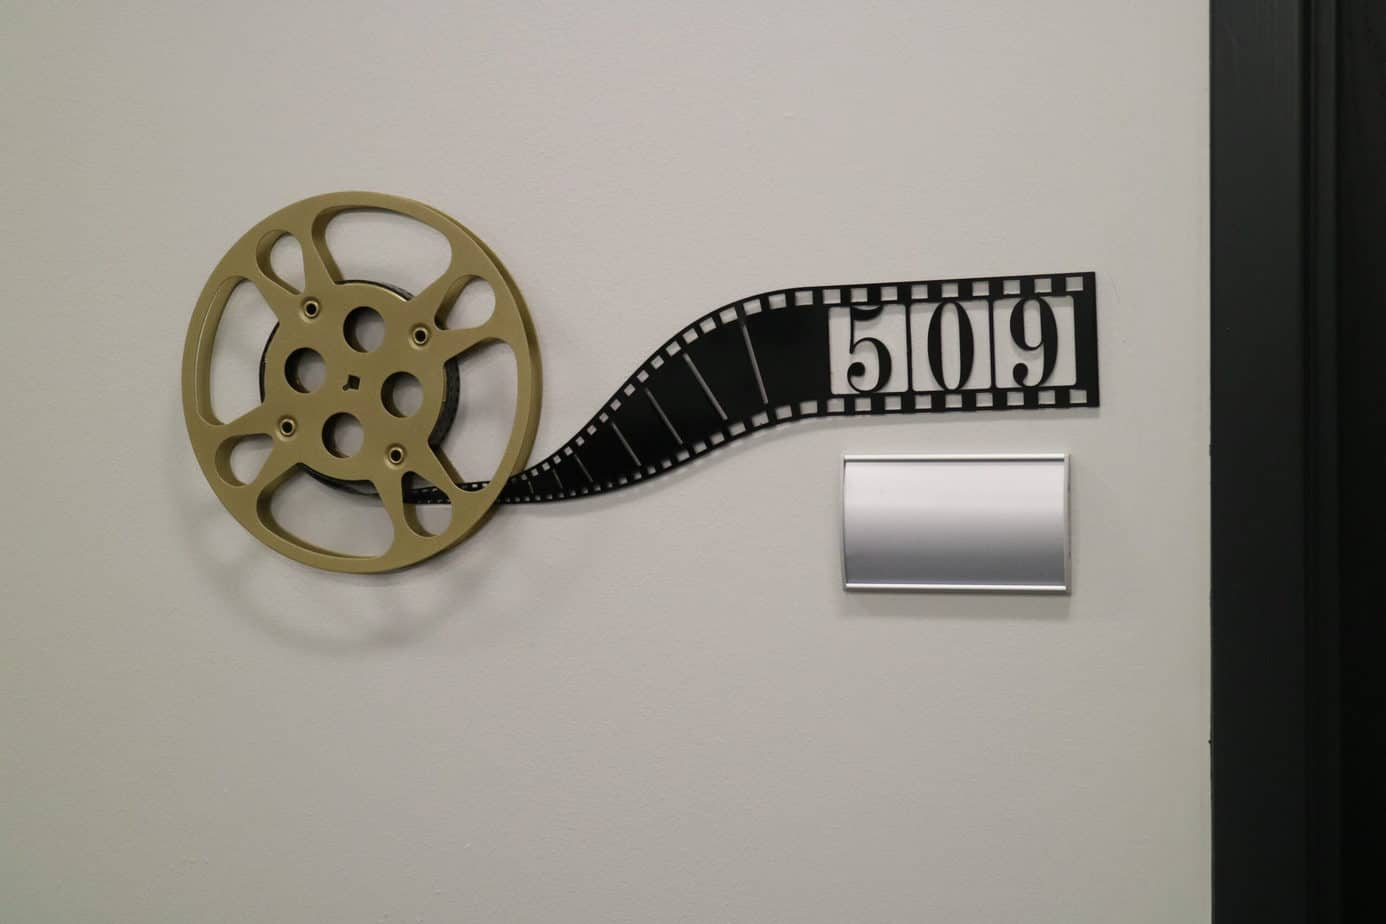 Decorative office number sign made  by Goldberg Brothers with a film reel and laser-cut sheet metal resembling a film strip